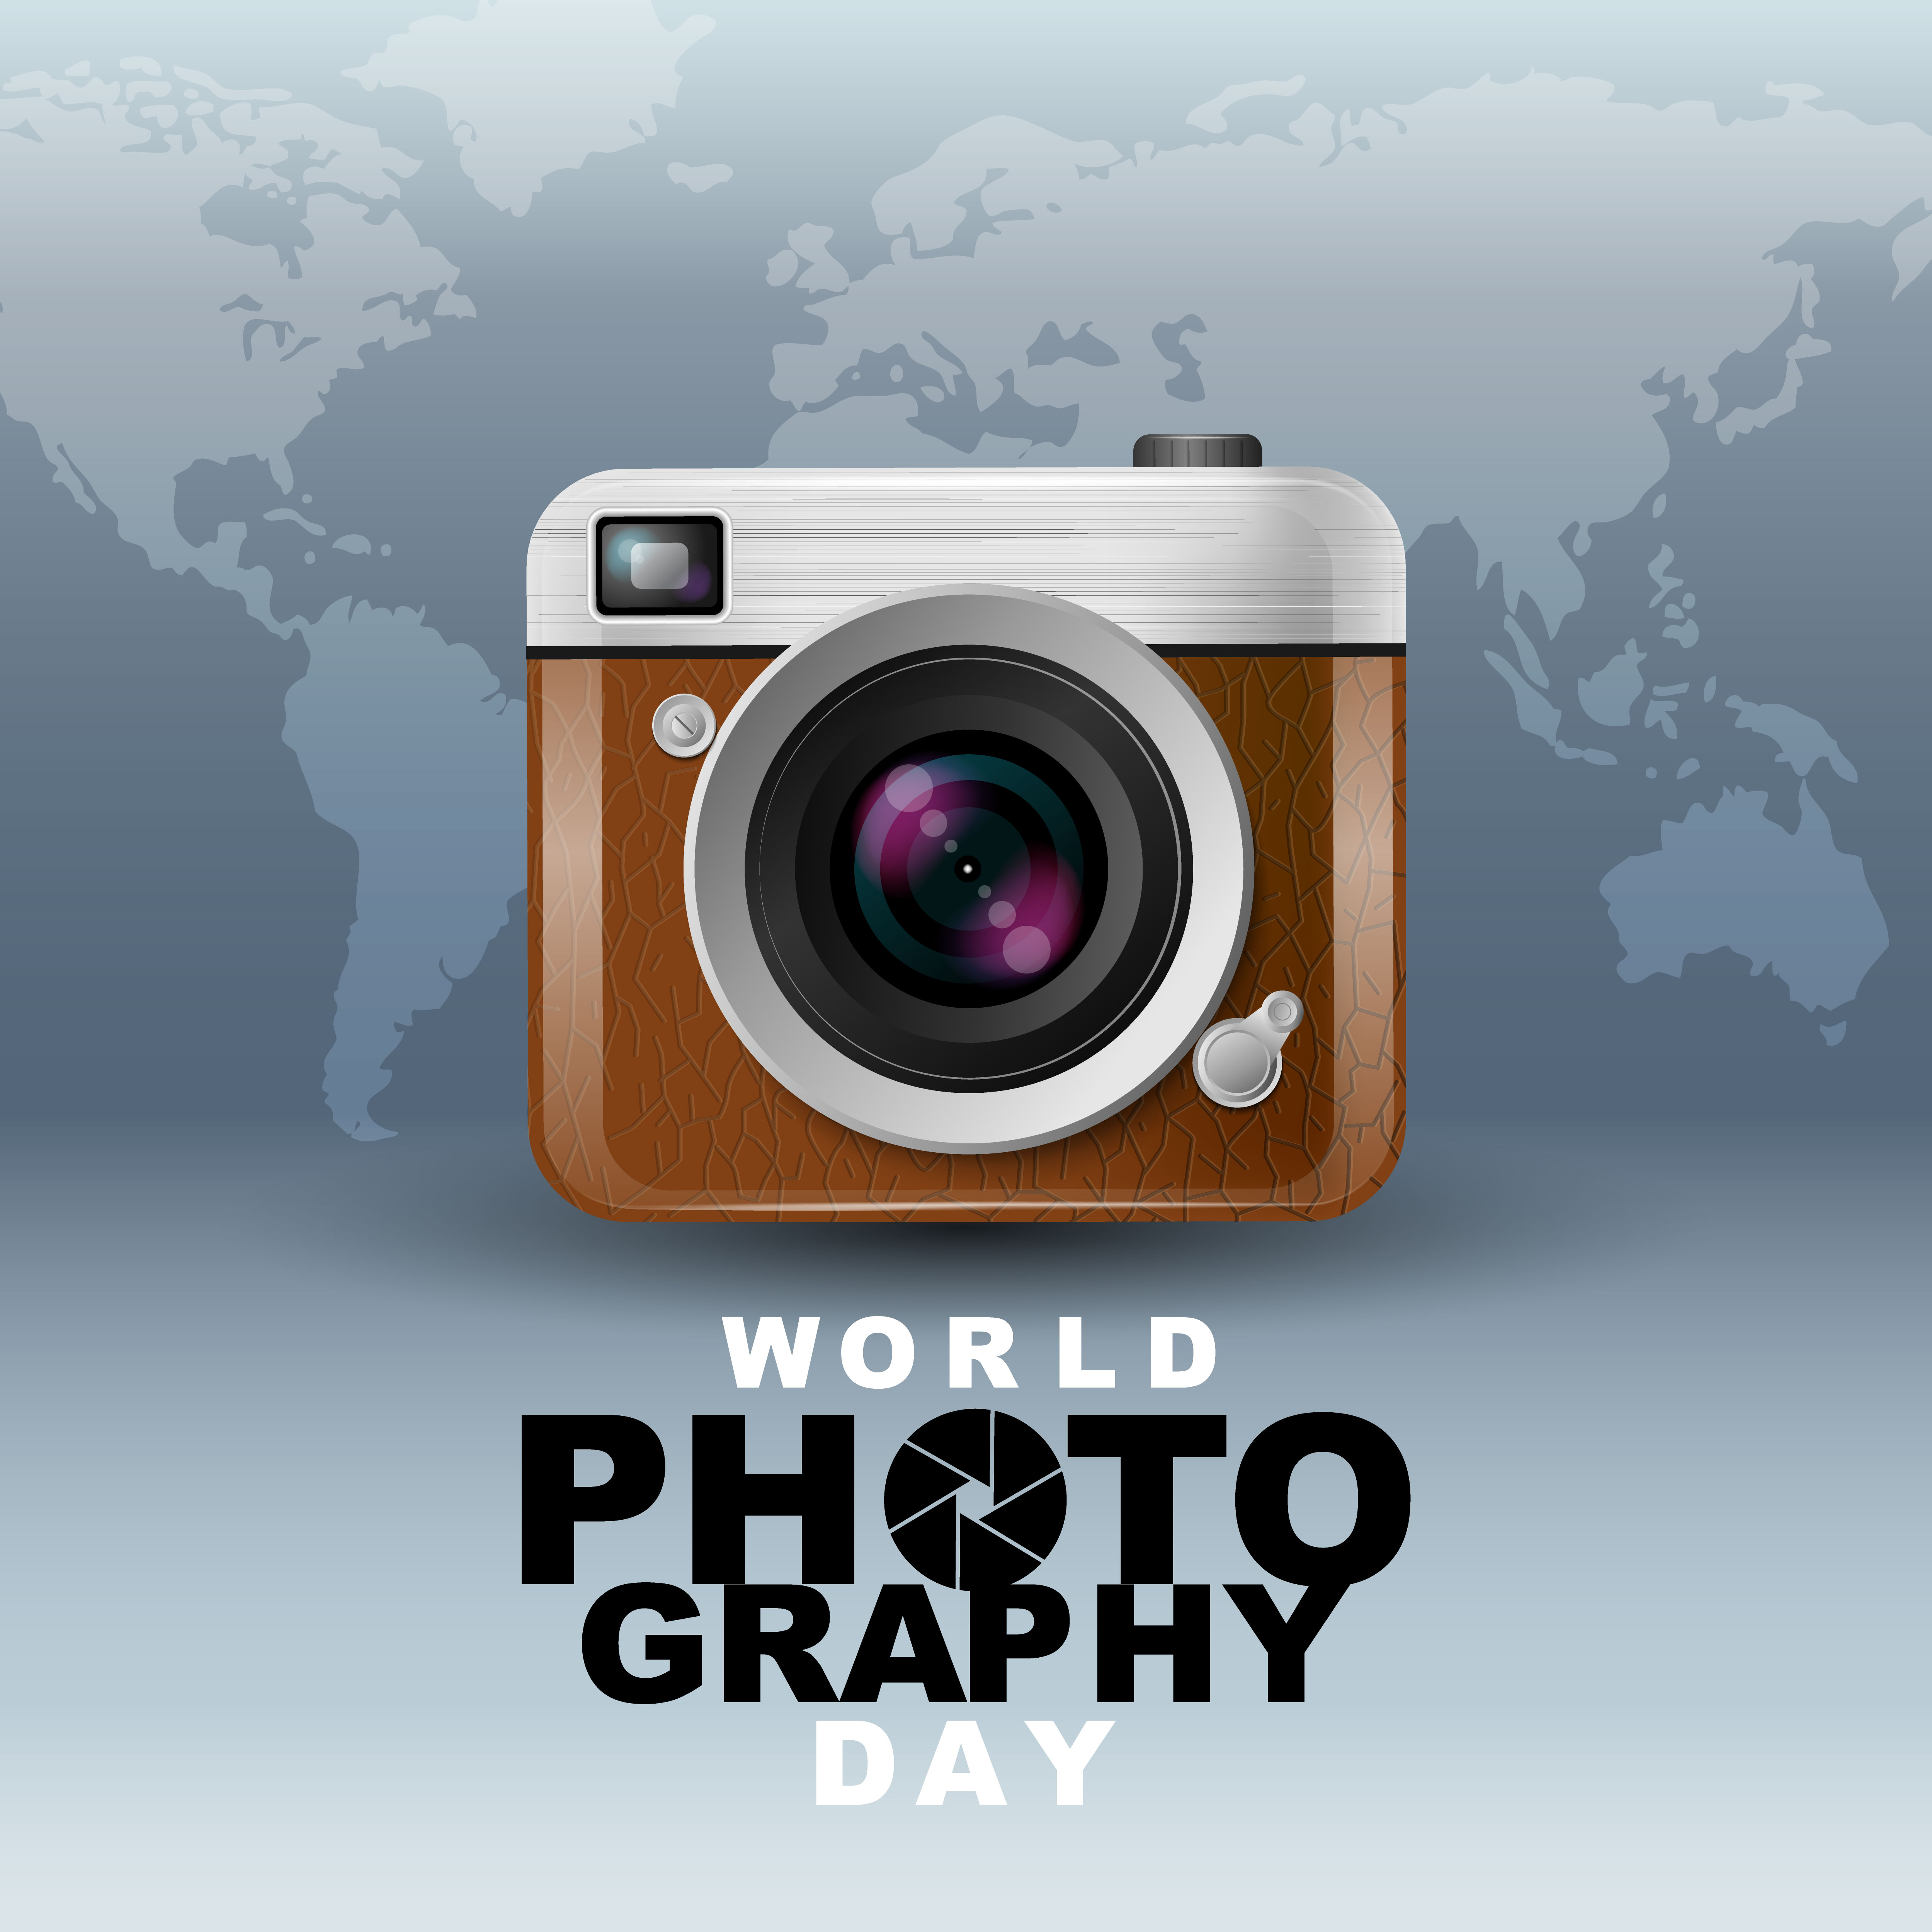 World Photography Day Poster With Camera And Map Download Free Vectors Clipart Graphics Vector Art